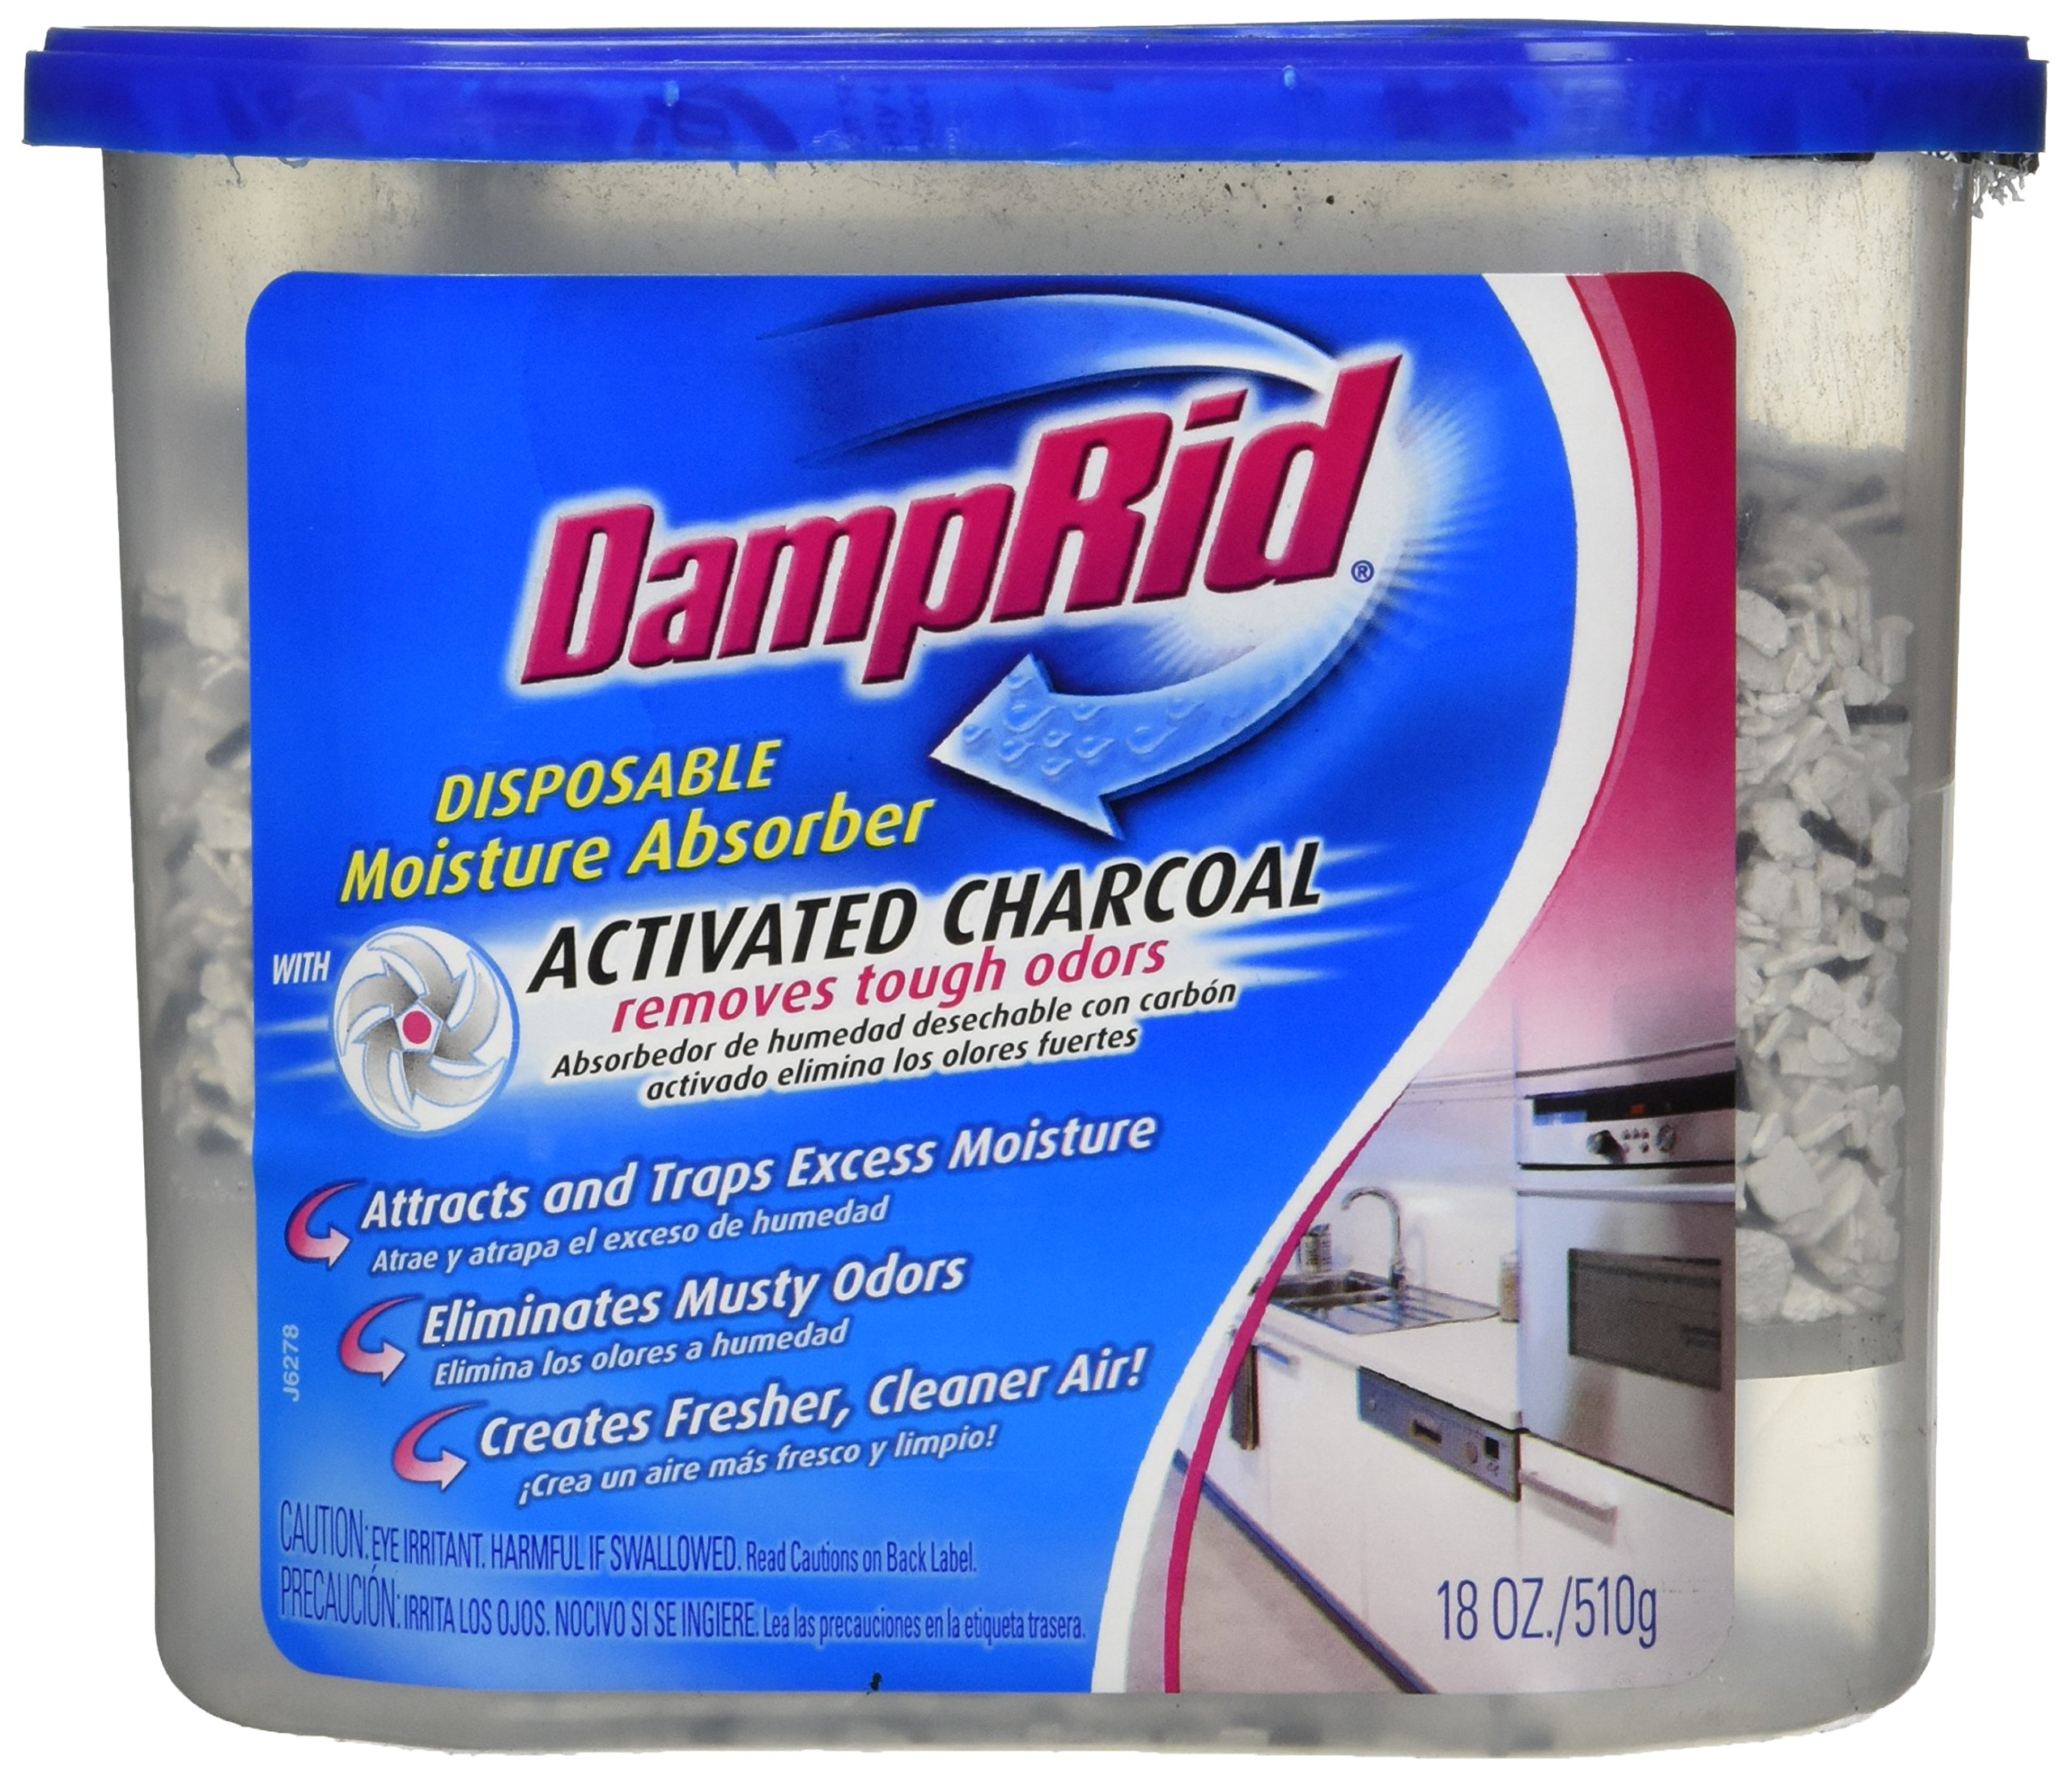 Damp Rid Fg118 18 Oz Moisture Absorber With Activated Charcoal (Pack of 2) by DampRid